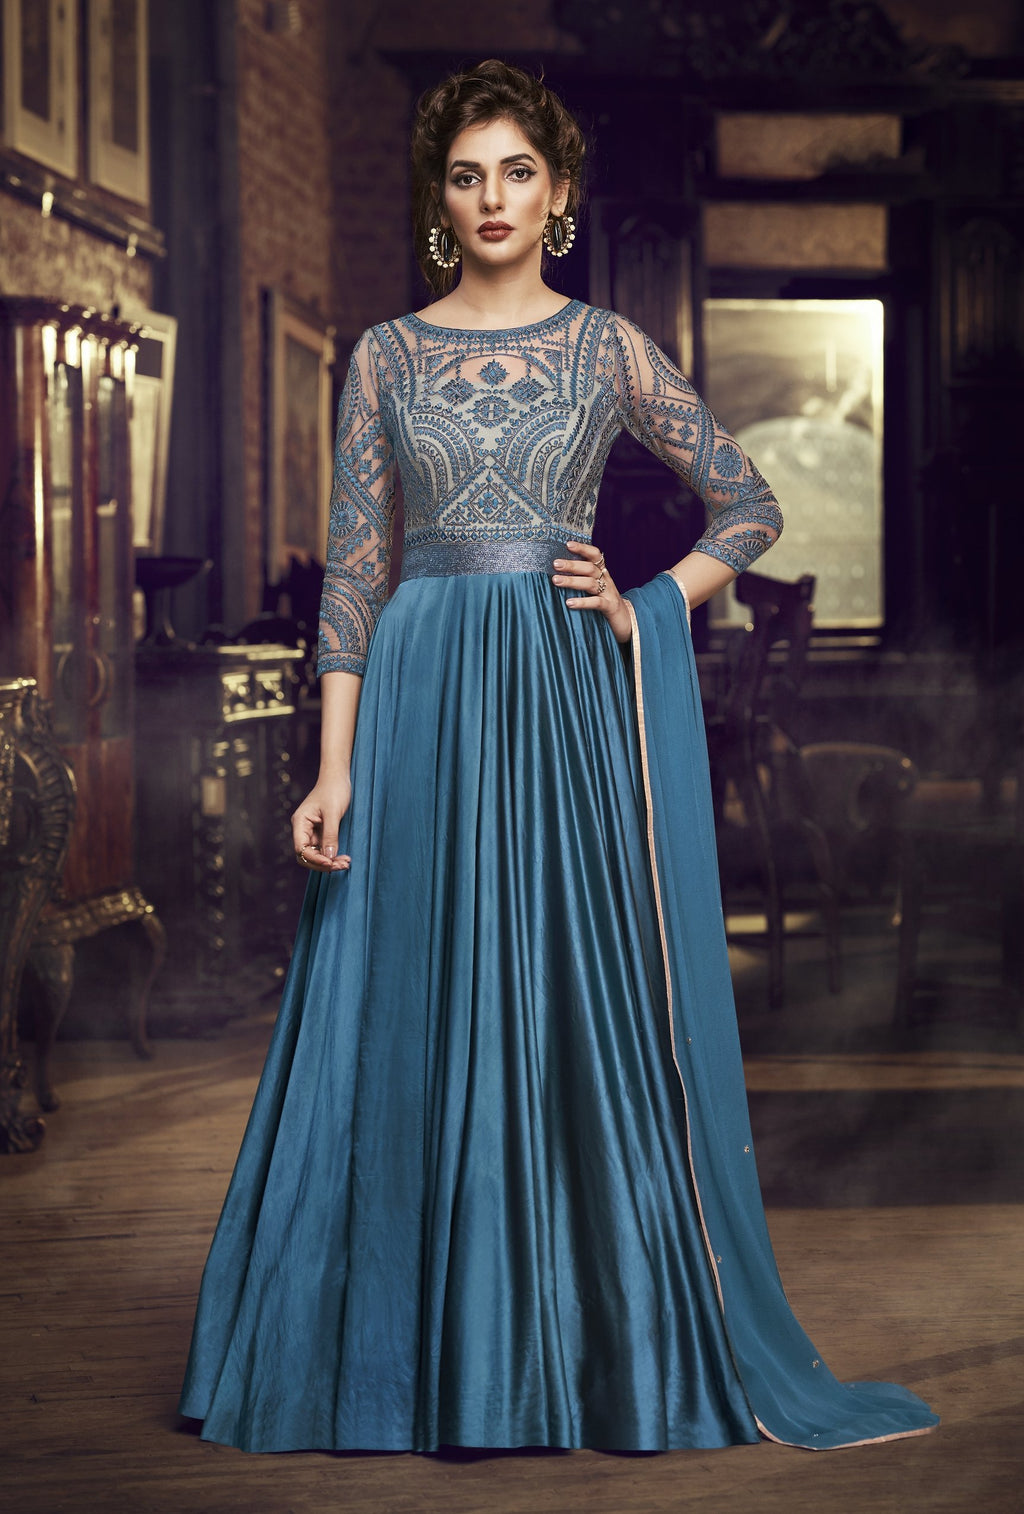 Blue Satin Modal Embroidered Latest Party Gown Online